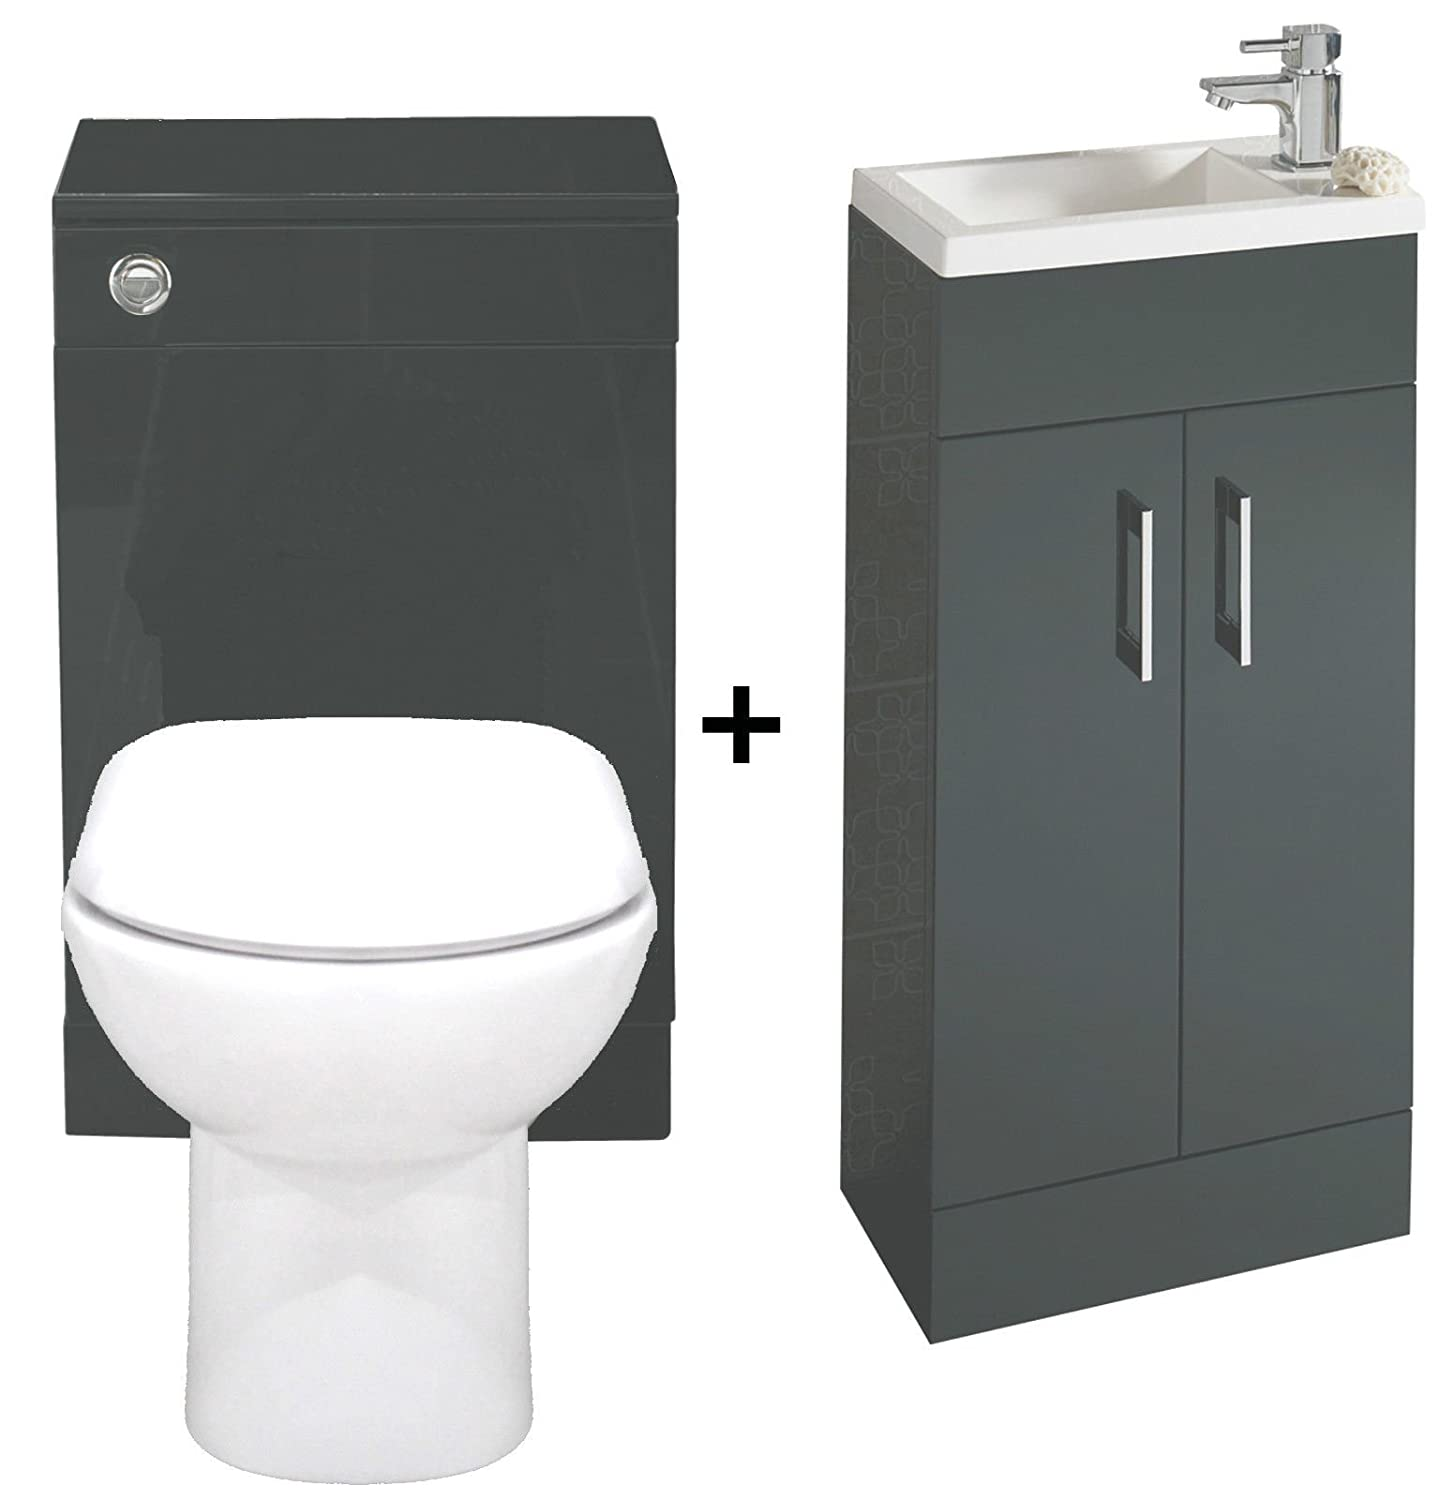 Sink And Toilet Combo Kelvin Anthracite 400 Bathroom Vanity Combination Unit Cloakroom